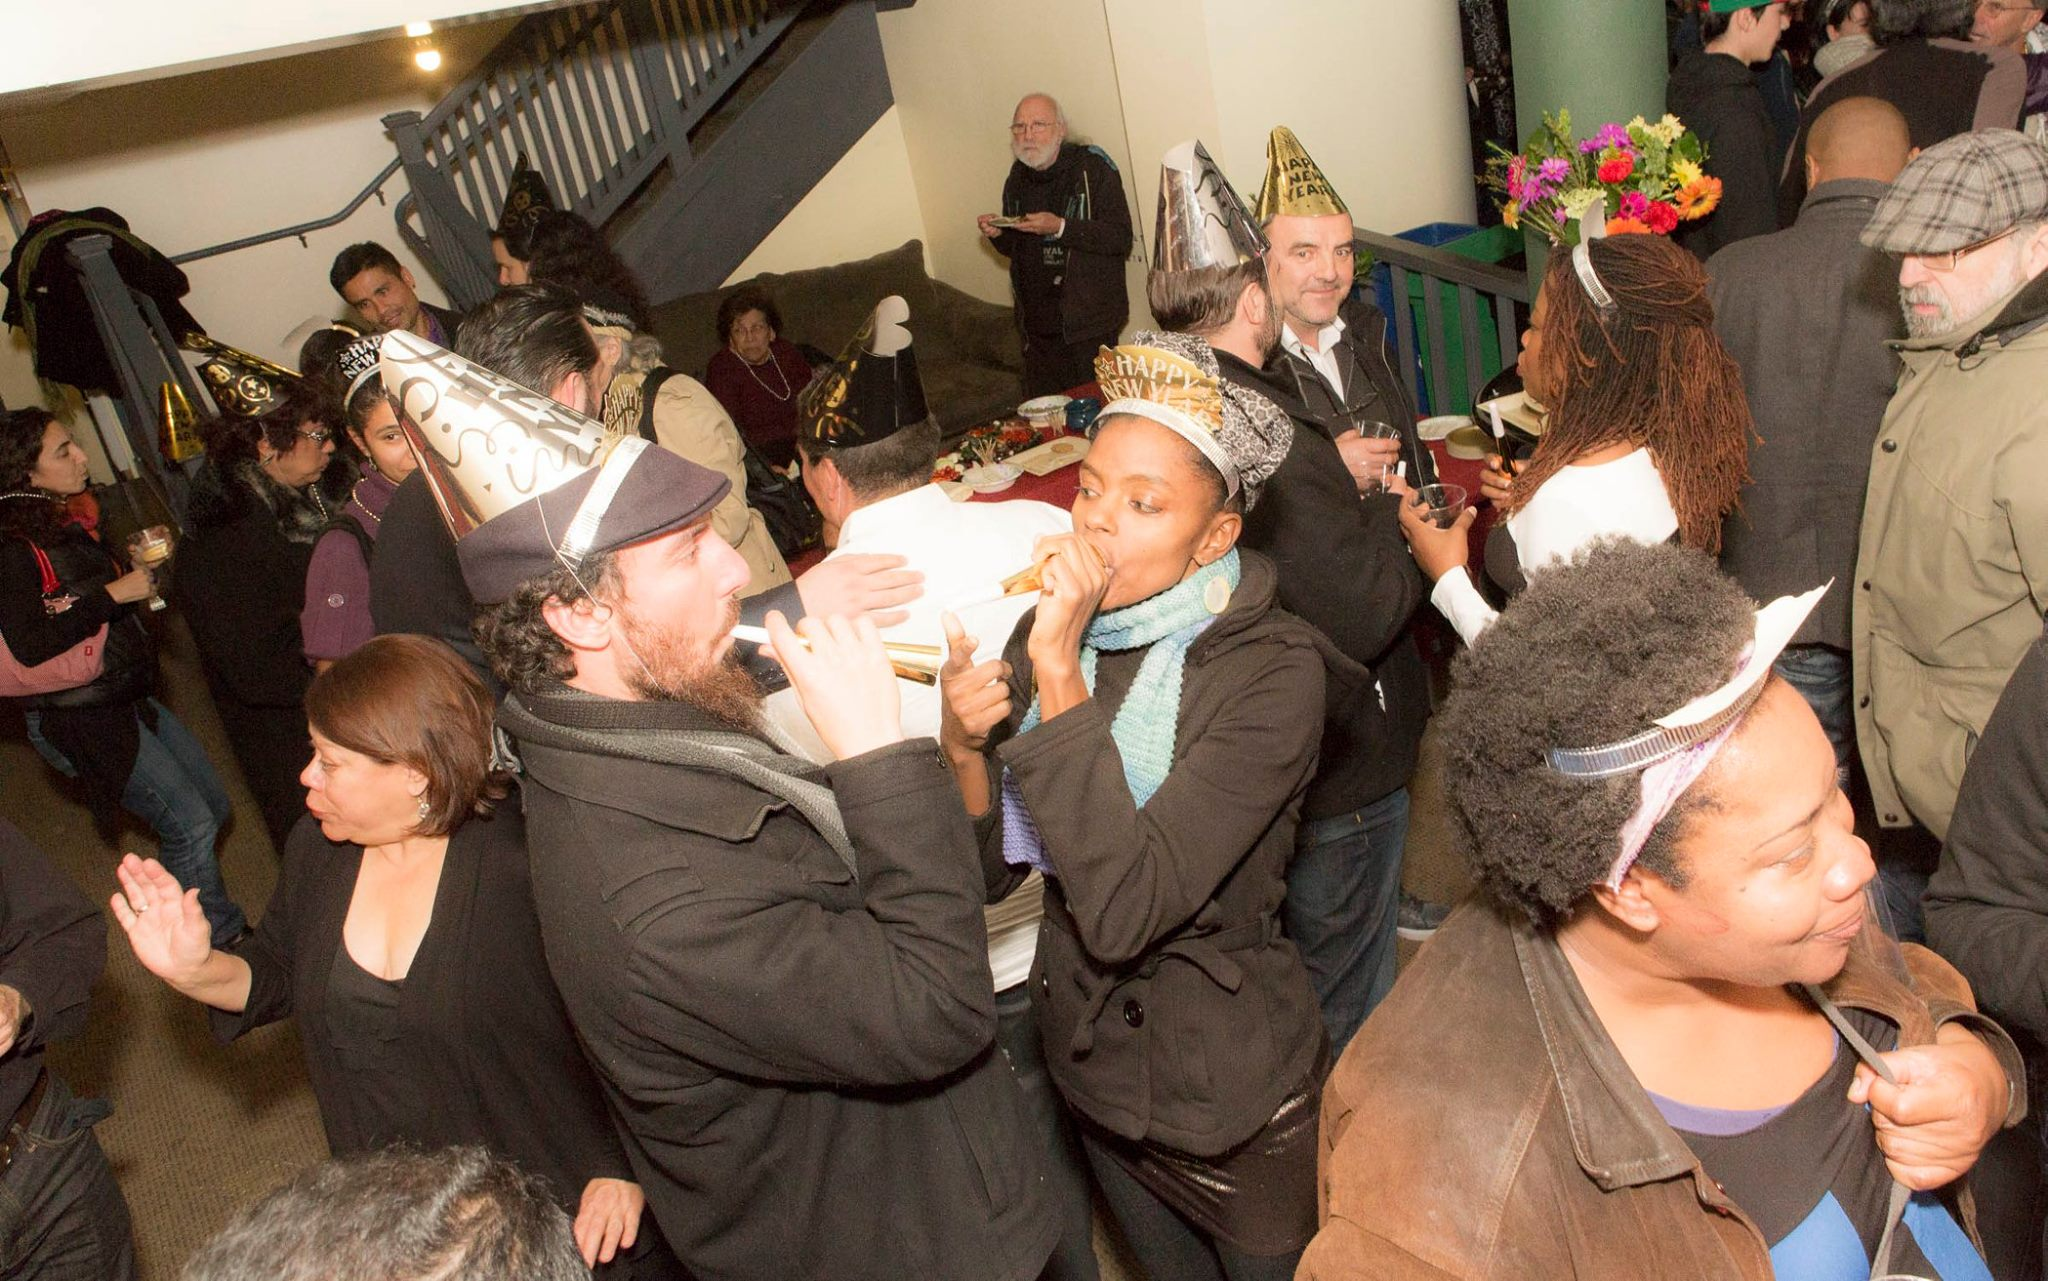 After the laughs - get your party hat on!